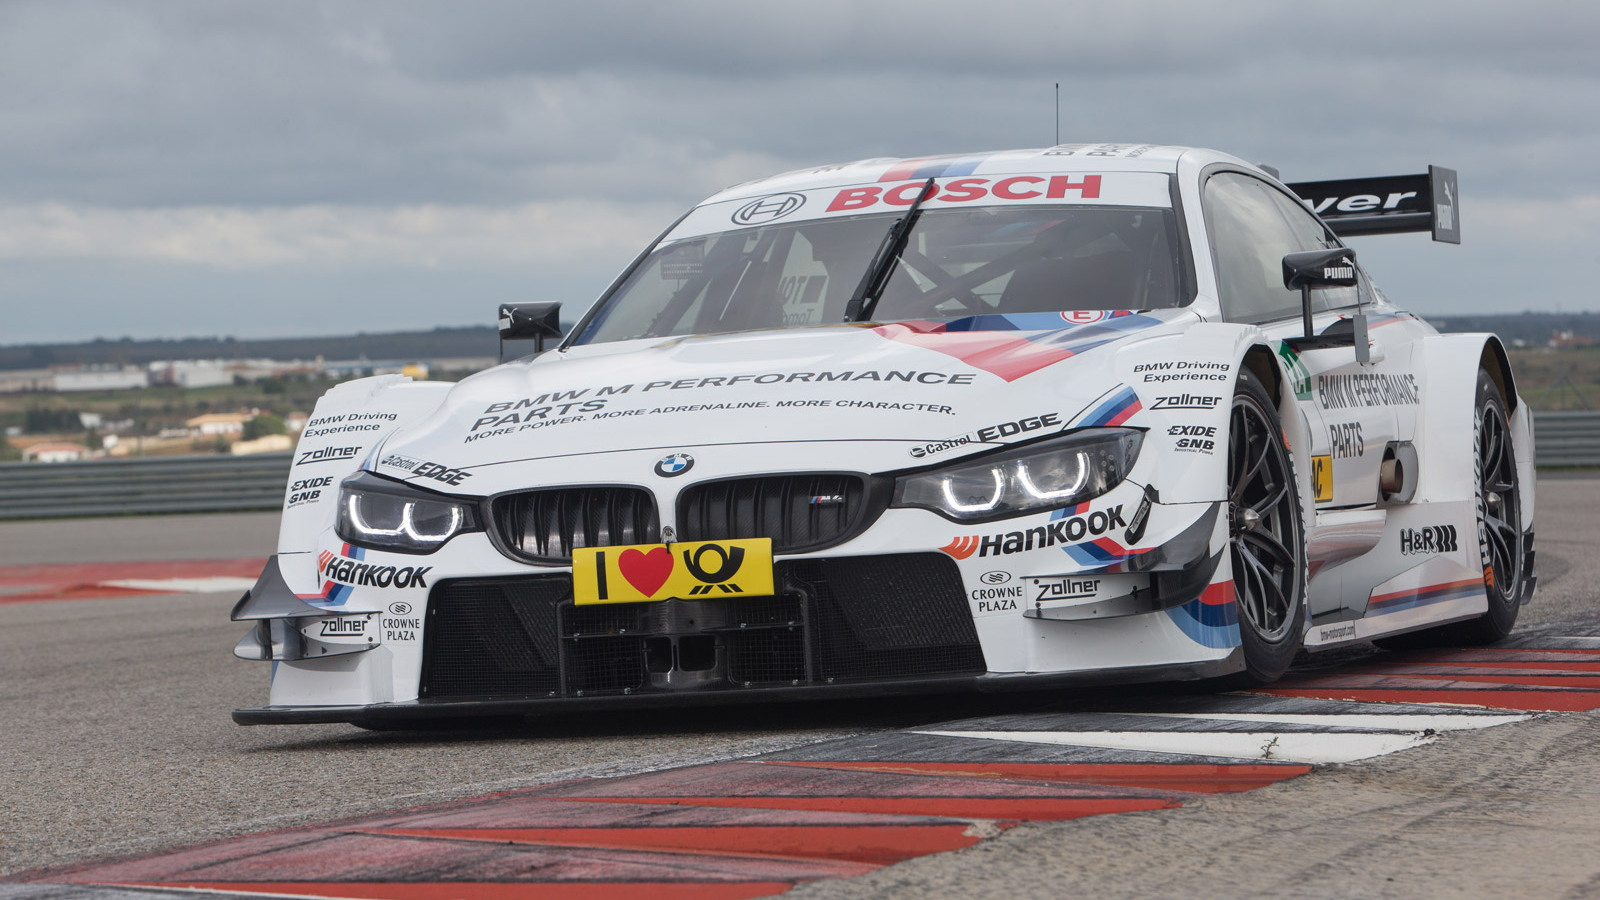 2014 BMW M4 DTM race car